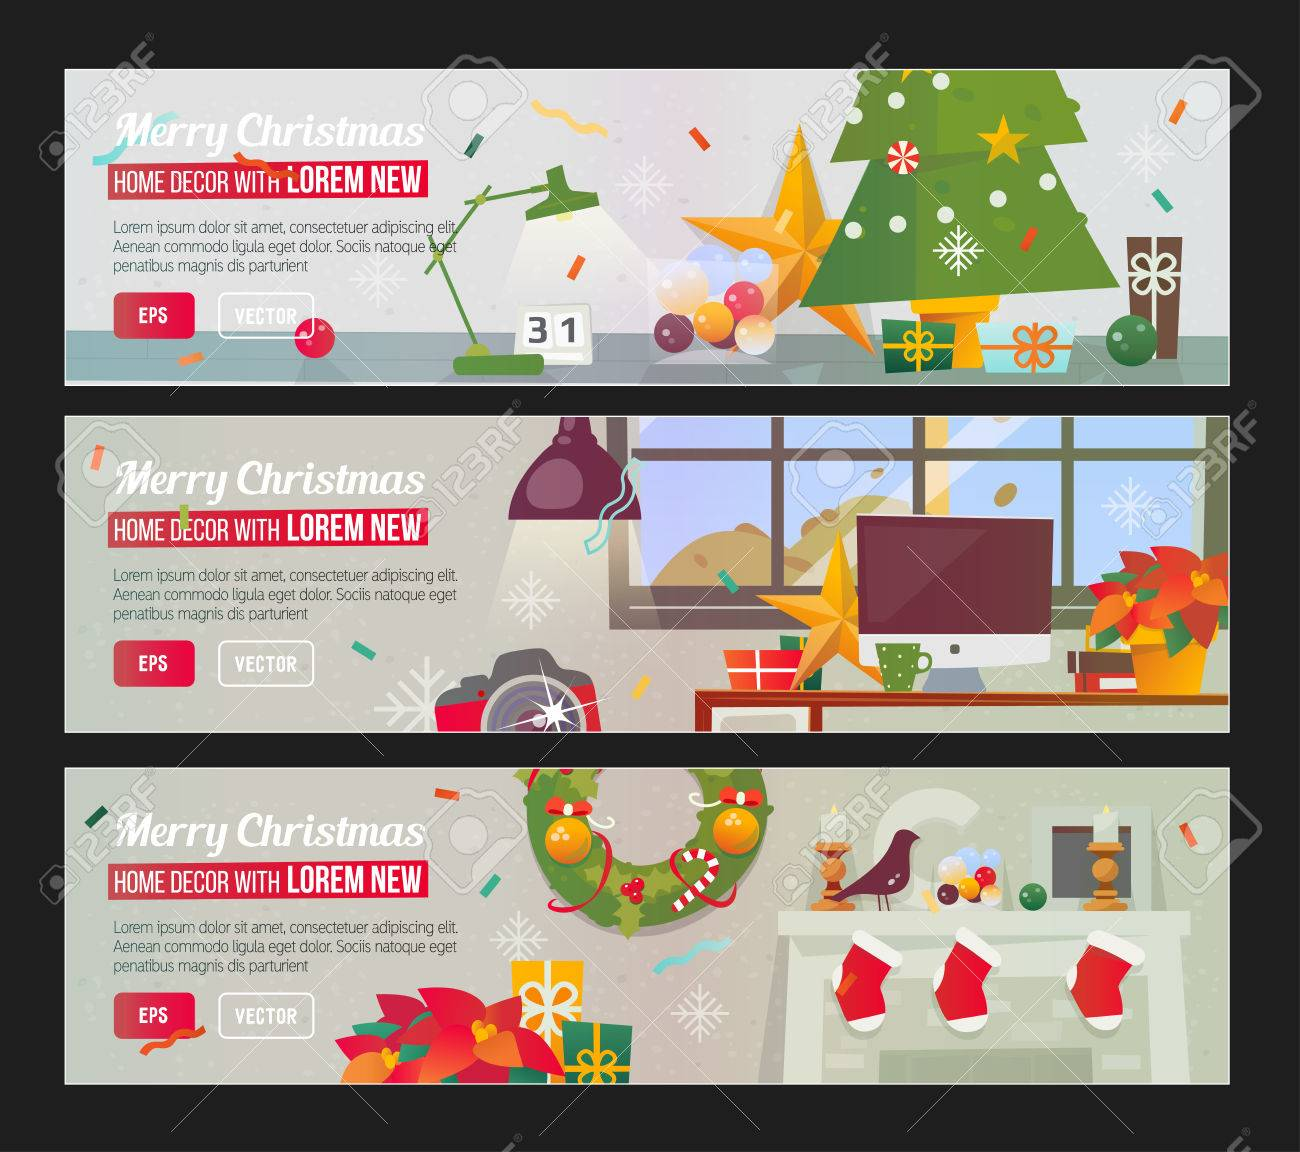 Workplace With Decorations Fireplace Christmas Home Flat Design